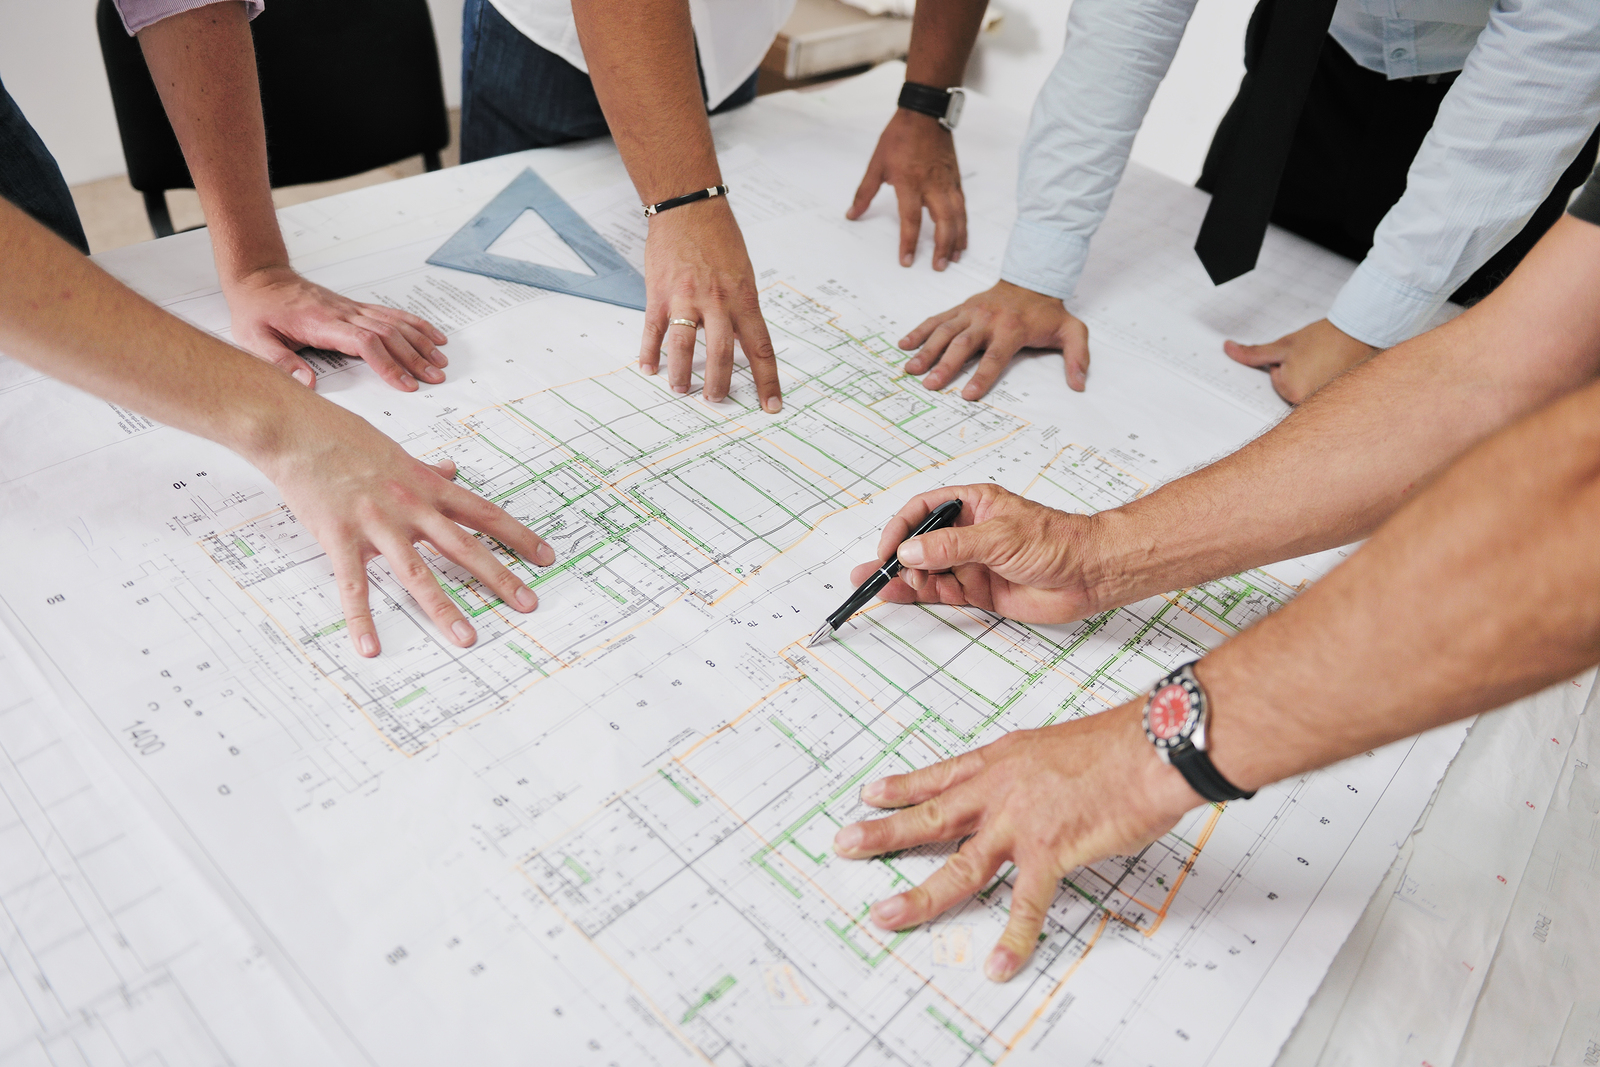 bigstock-Team-of-architects-people-in-g-23434244.jpg